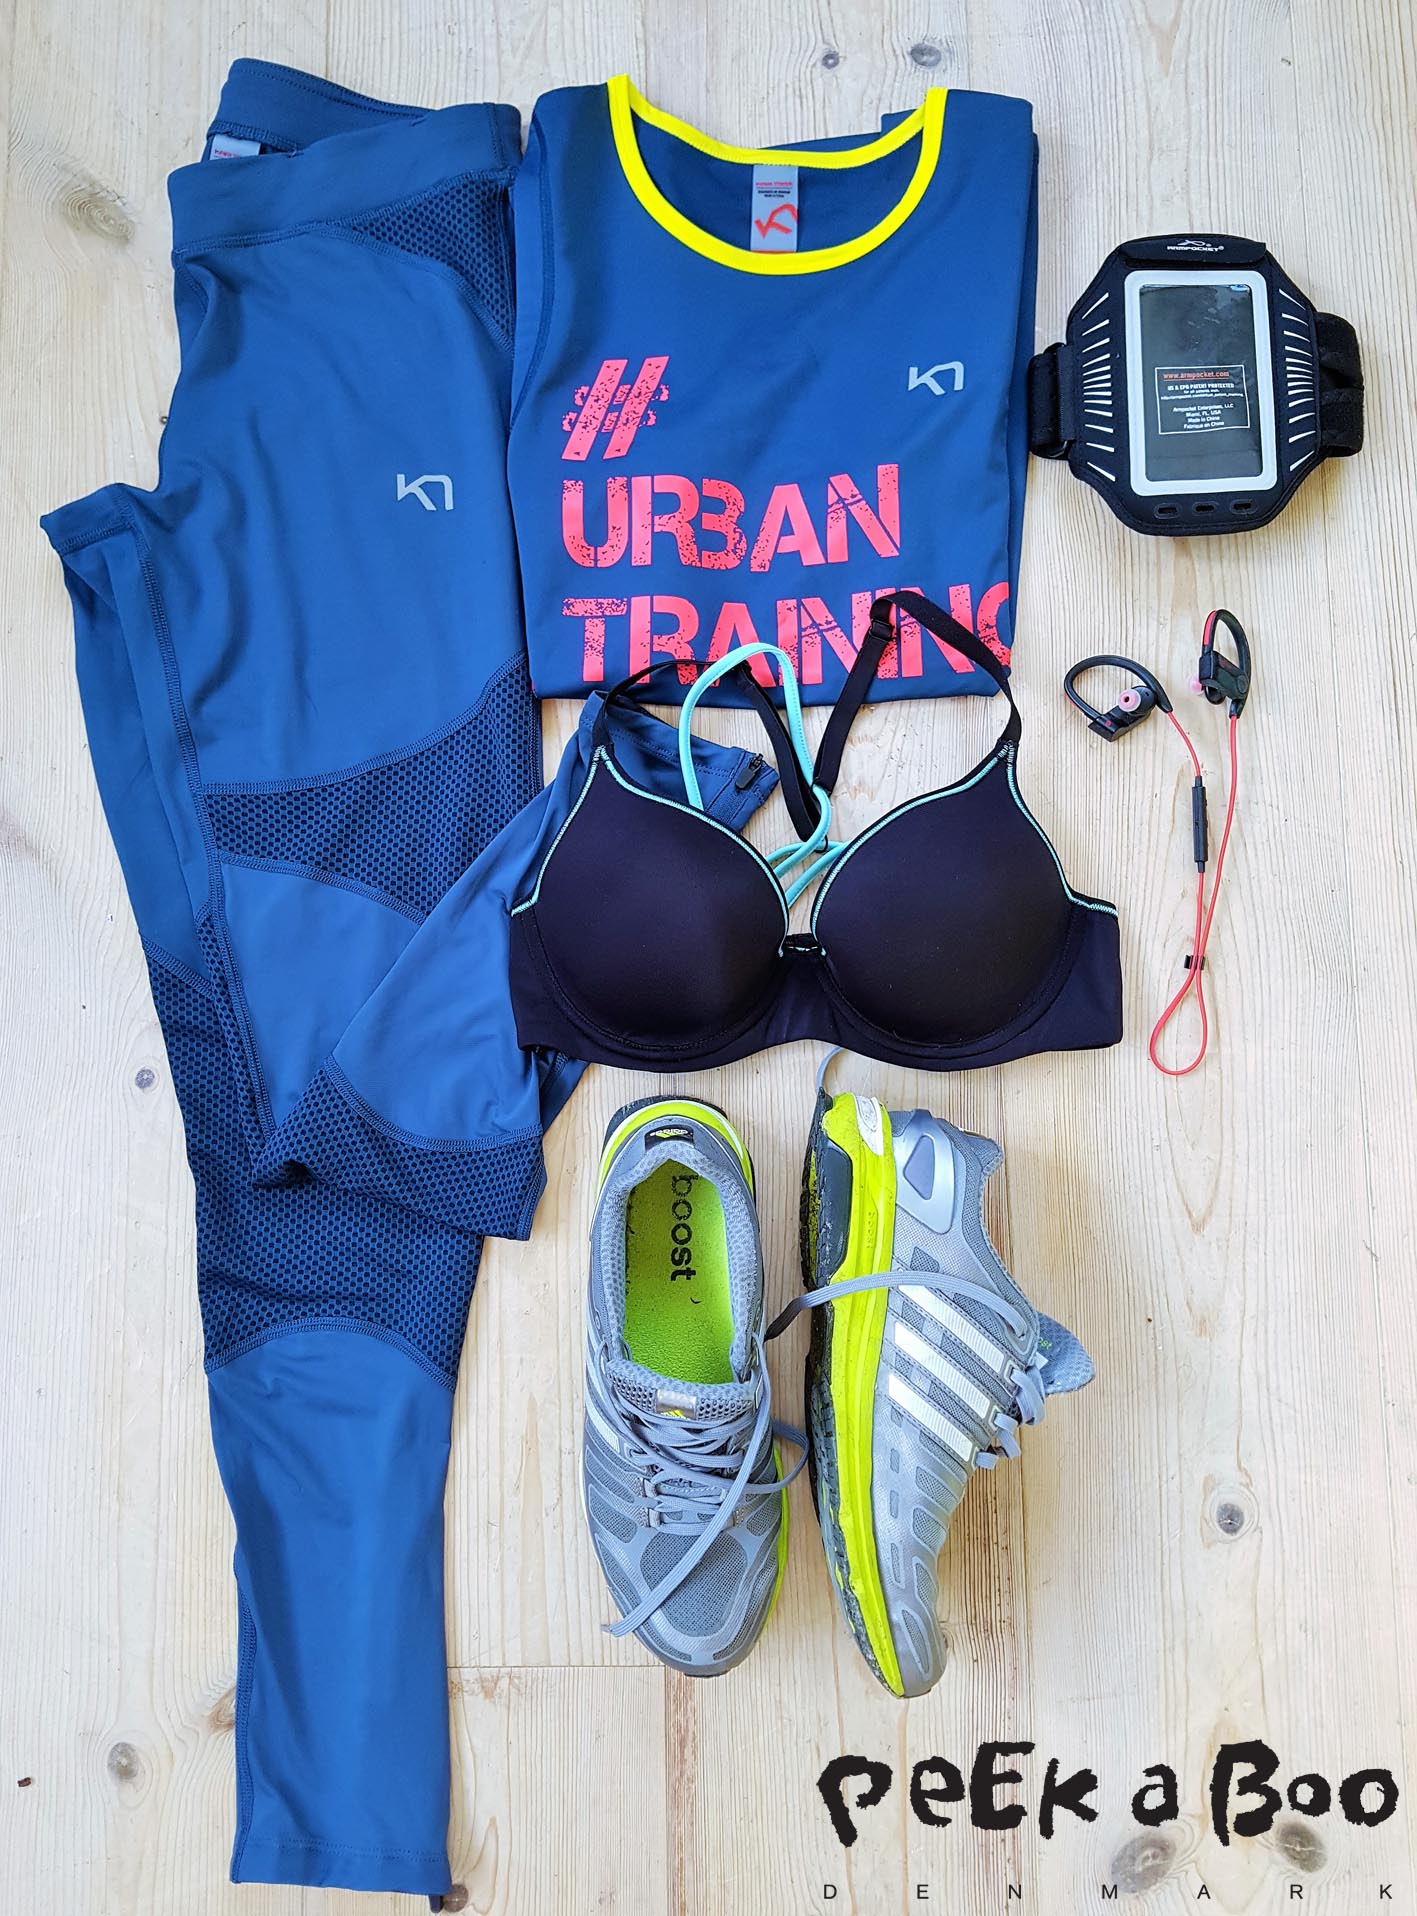 Todays training gear. Top and leggings from Kari Traa, bra from Casall, sneakers from Adidas boost, arm pocket for my Samsung 7 edge from Armpocket and when I run alone I can't run without music in my ears and for this I use wireless headset  from Jabra Sports pace.